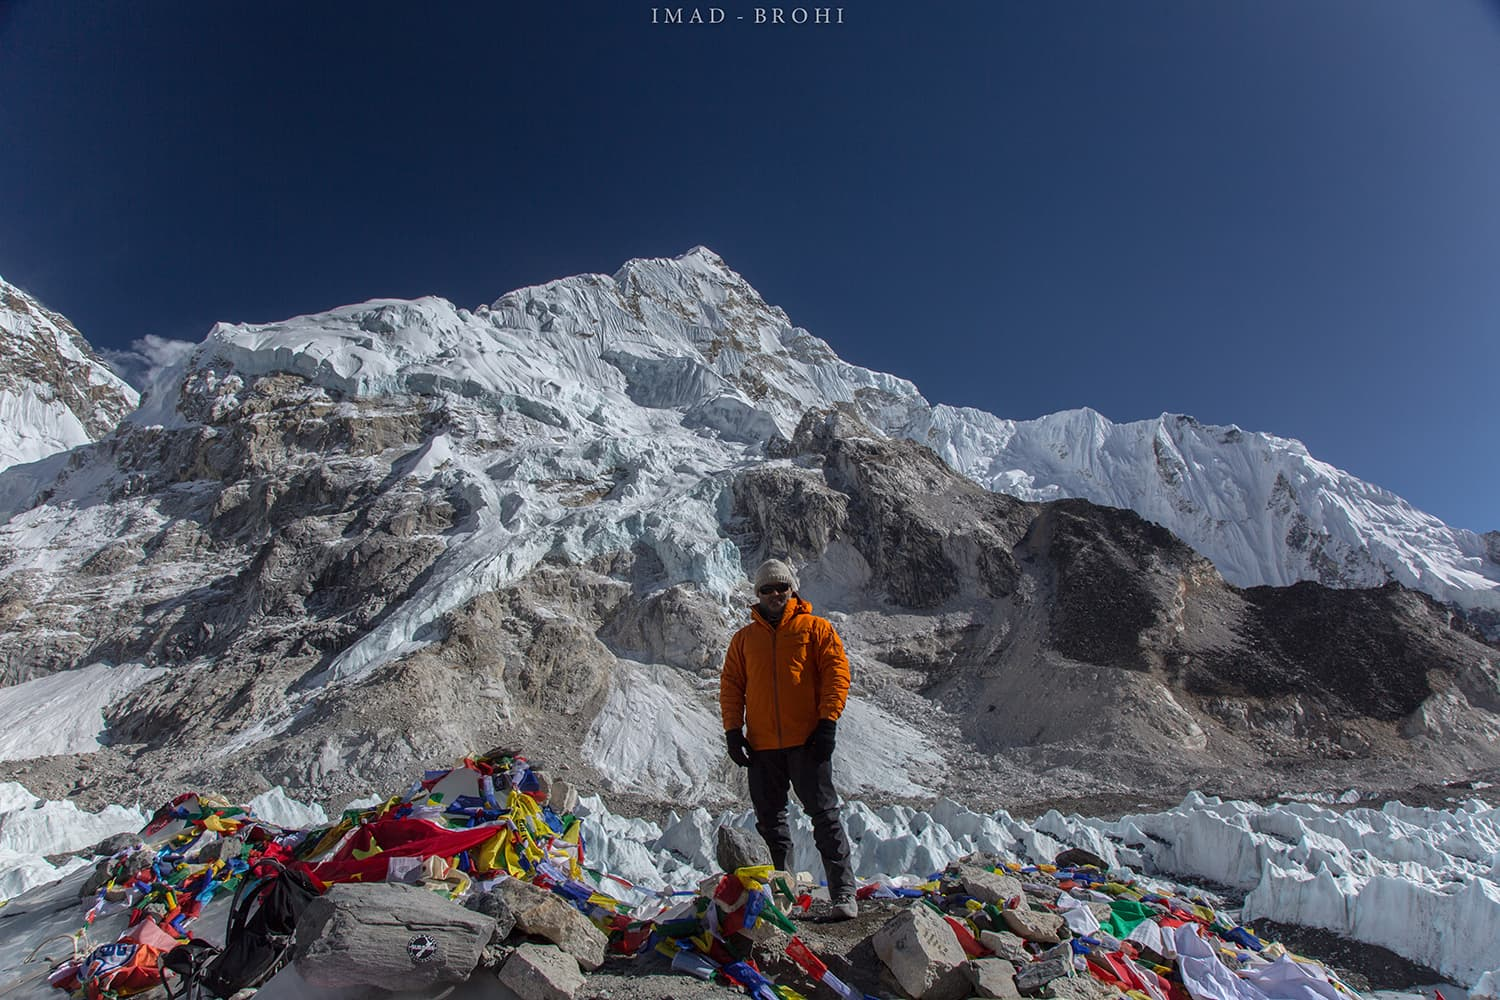 Day 9: Mount Everest Base Camp at 5,265m.